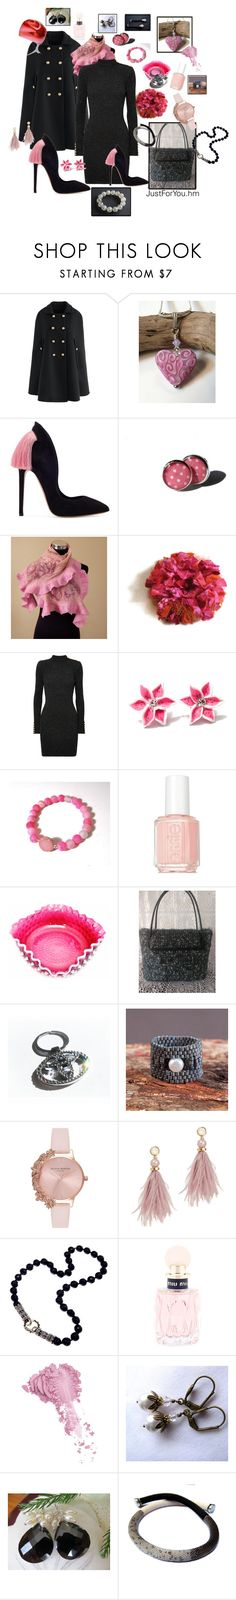 """Gift ideas for Valentine's Day!"" by justforyouhm ❤ liked on Polyvore featuring Chicwish, Cadeau, Balmain, Essie, BMW, Olivia Burton, Lizzie Fortunato, Miu Miu and Bésame"